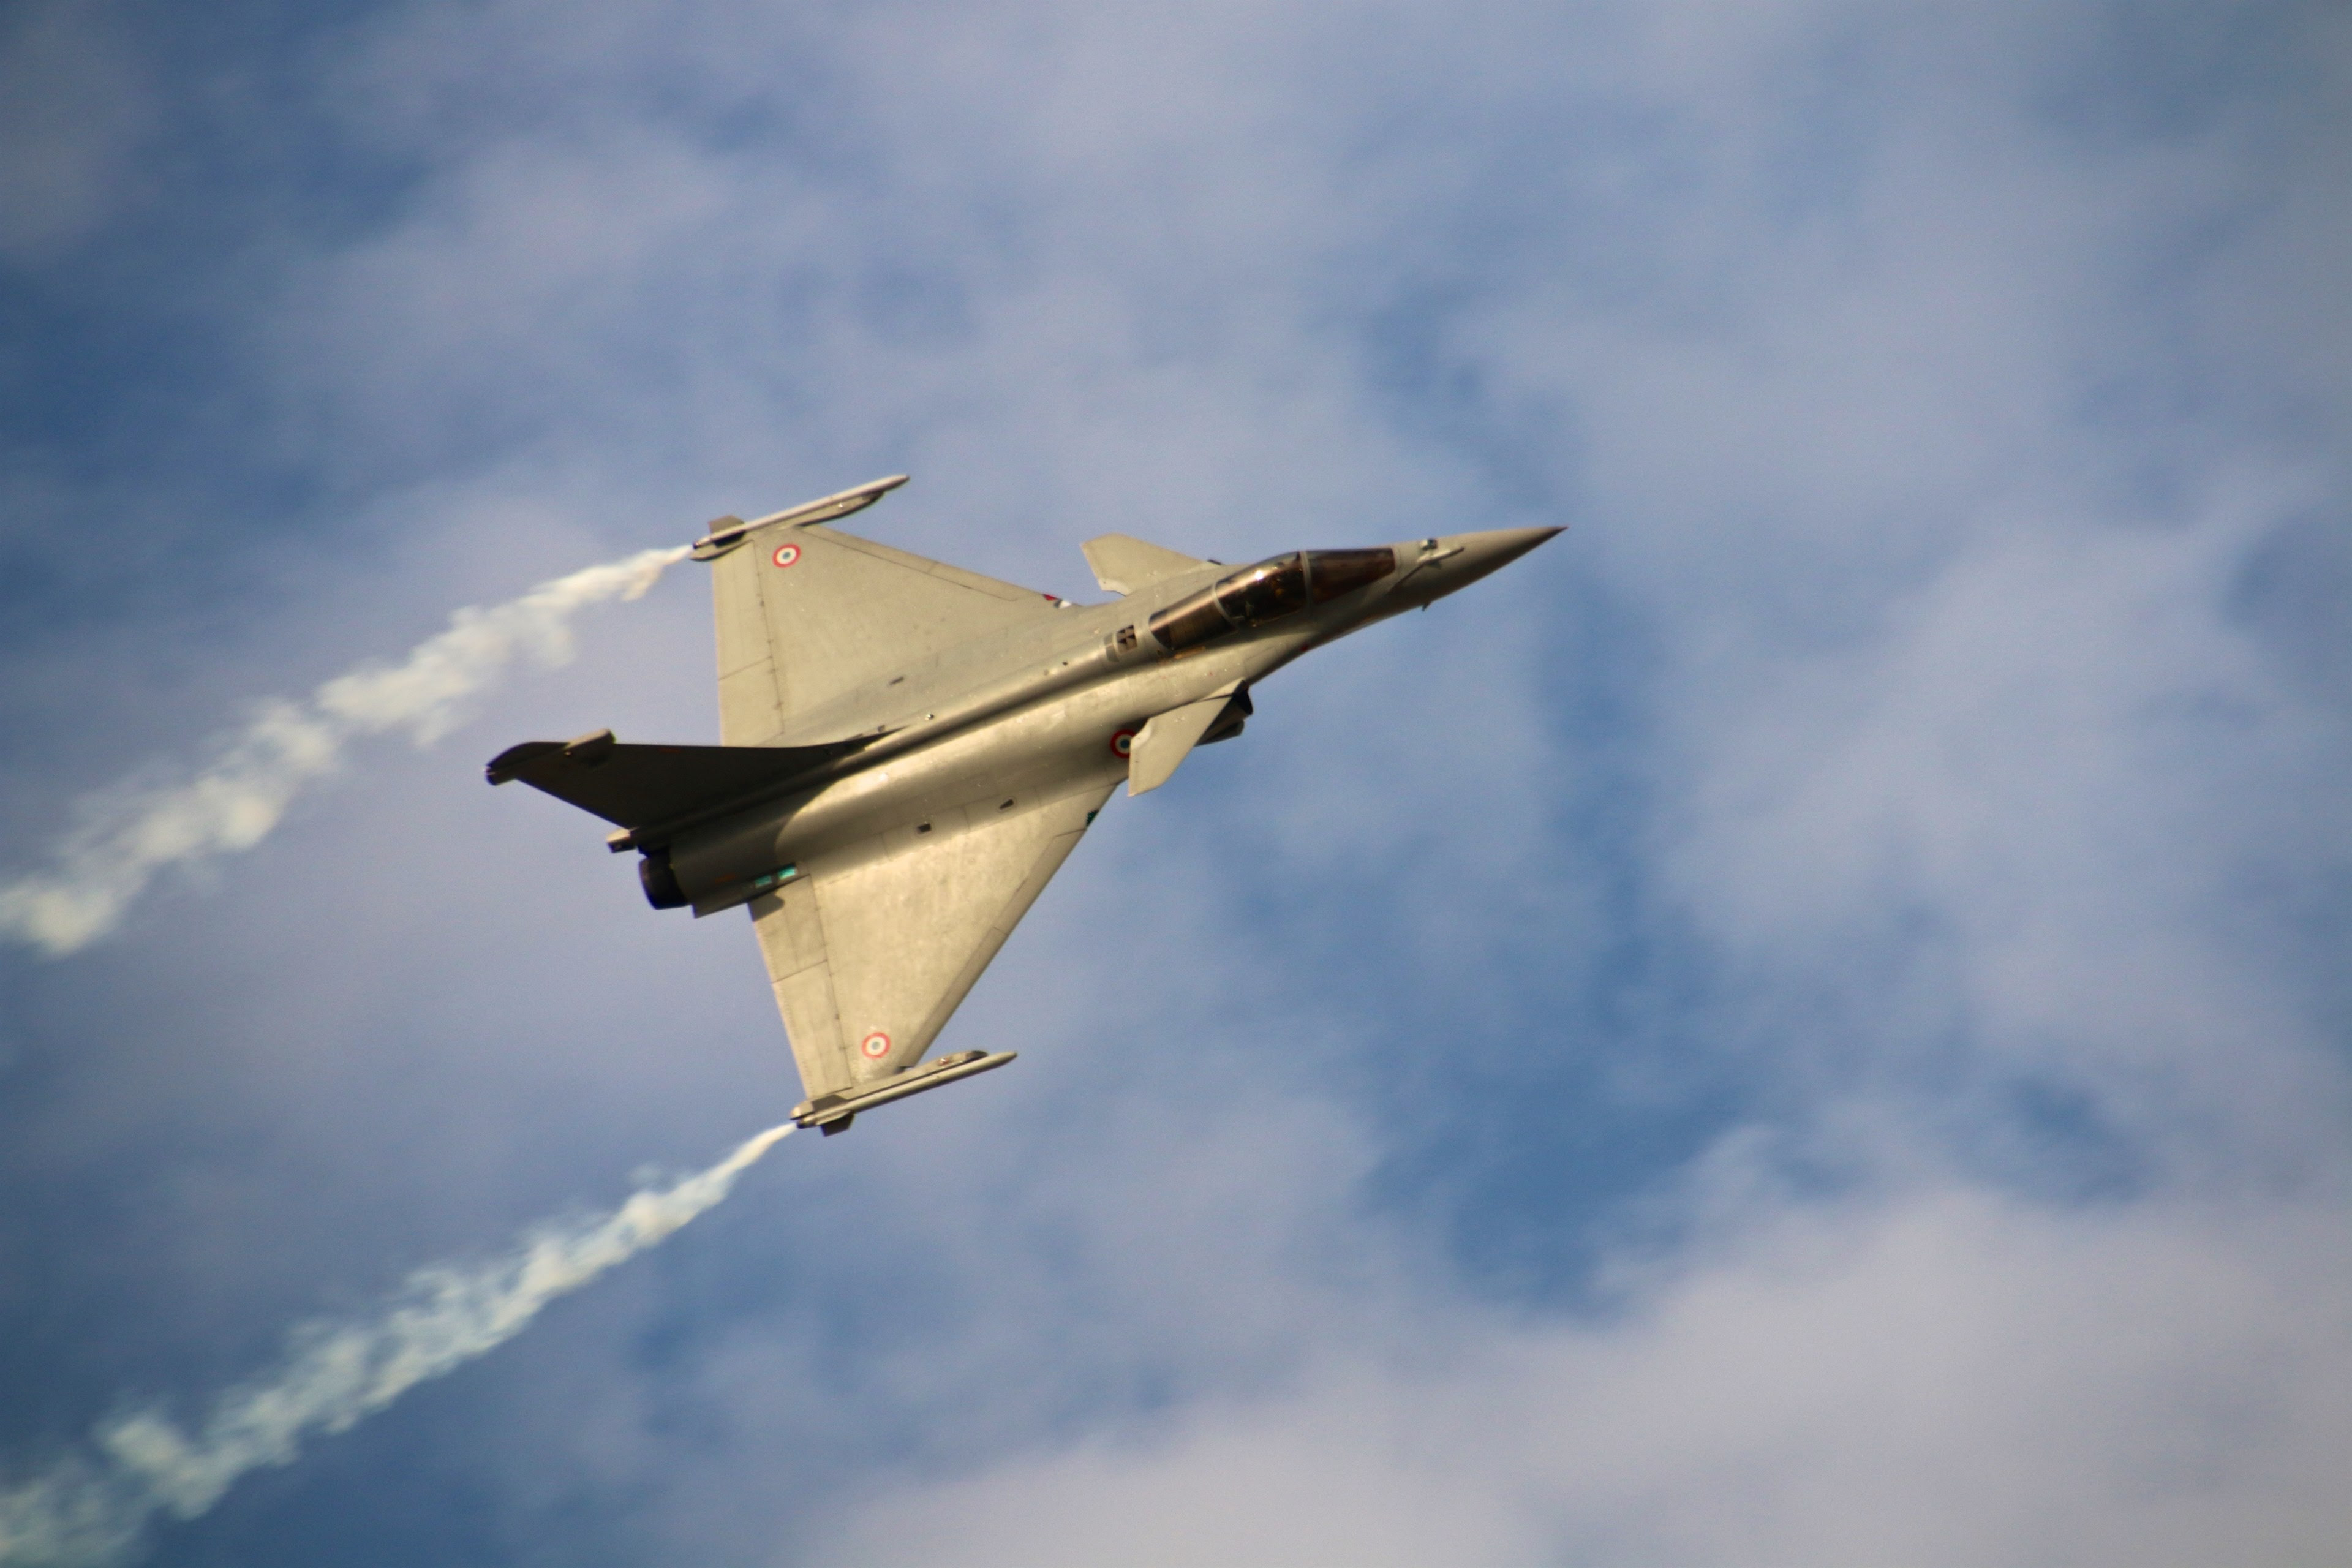 rafale fighter at dubai airshow 2015 4k wallpaper and ...